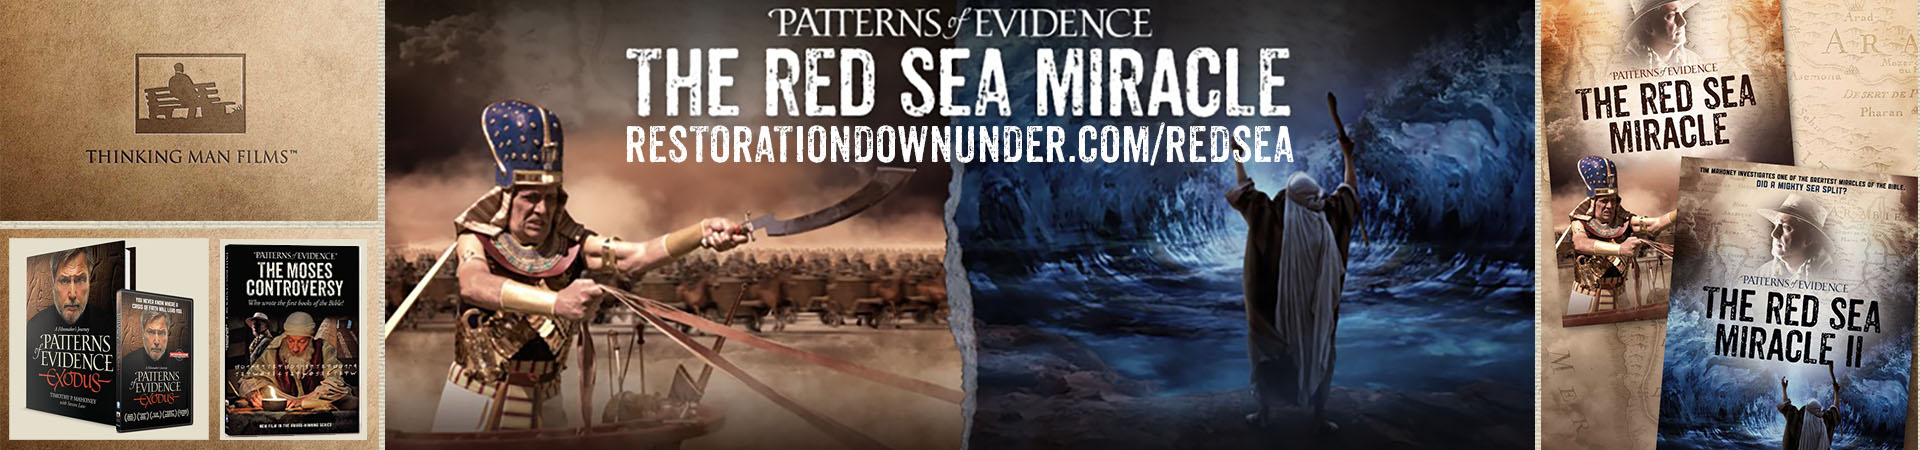 Patterns Of Evidence The Red Sea Miracle